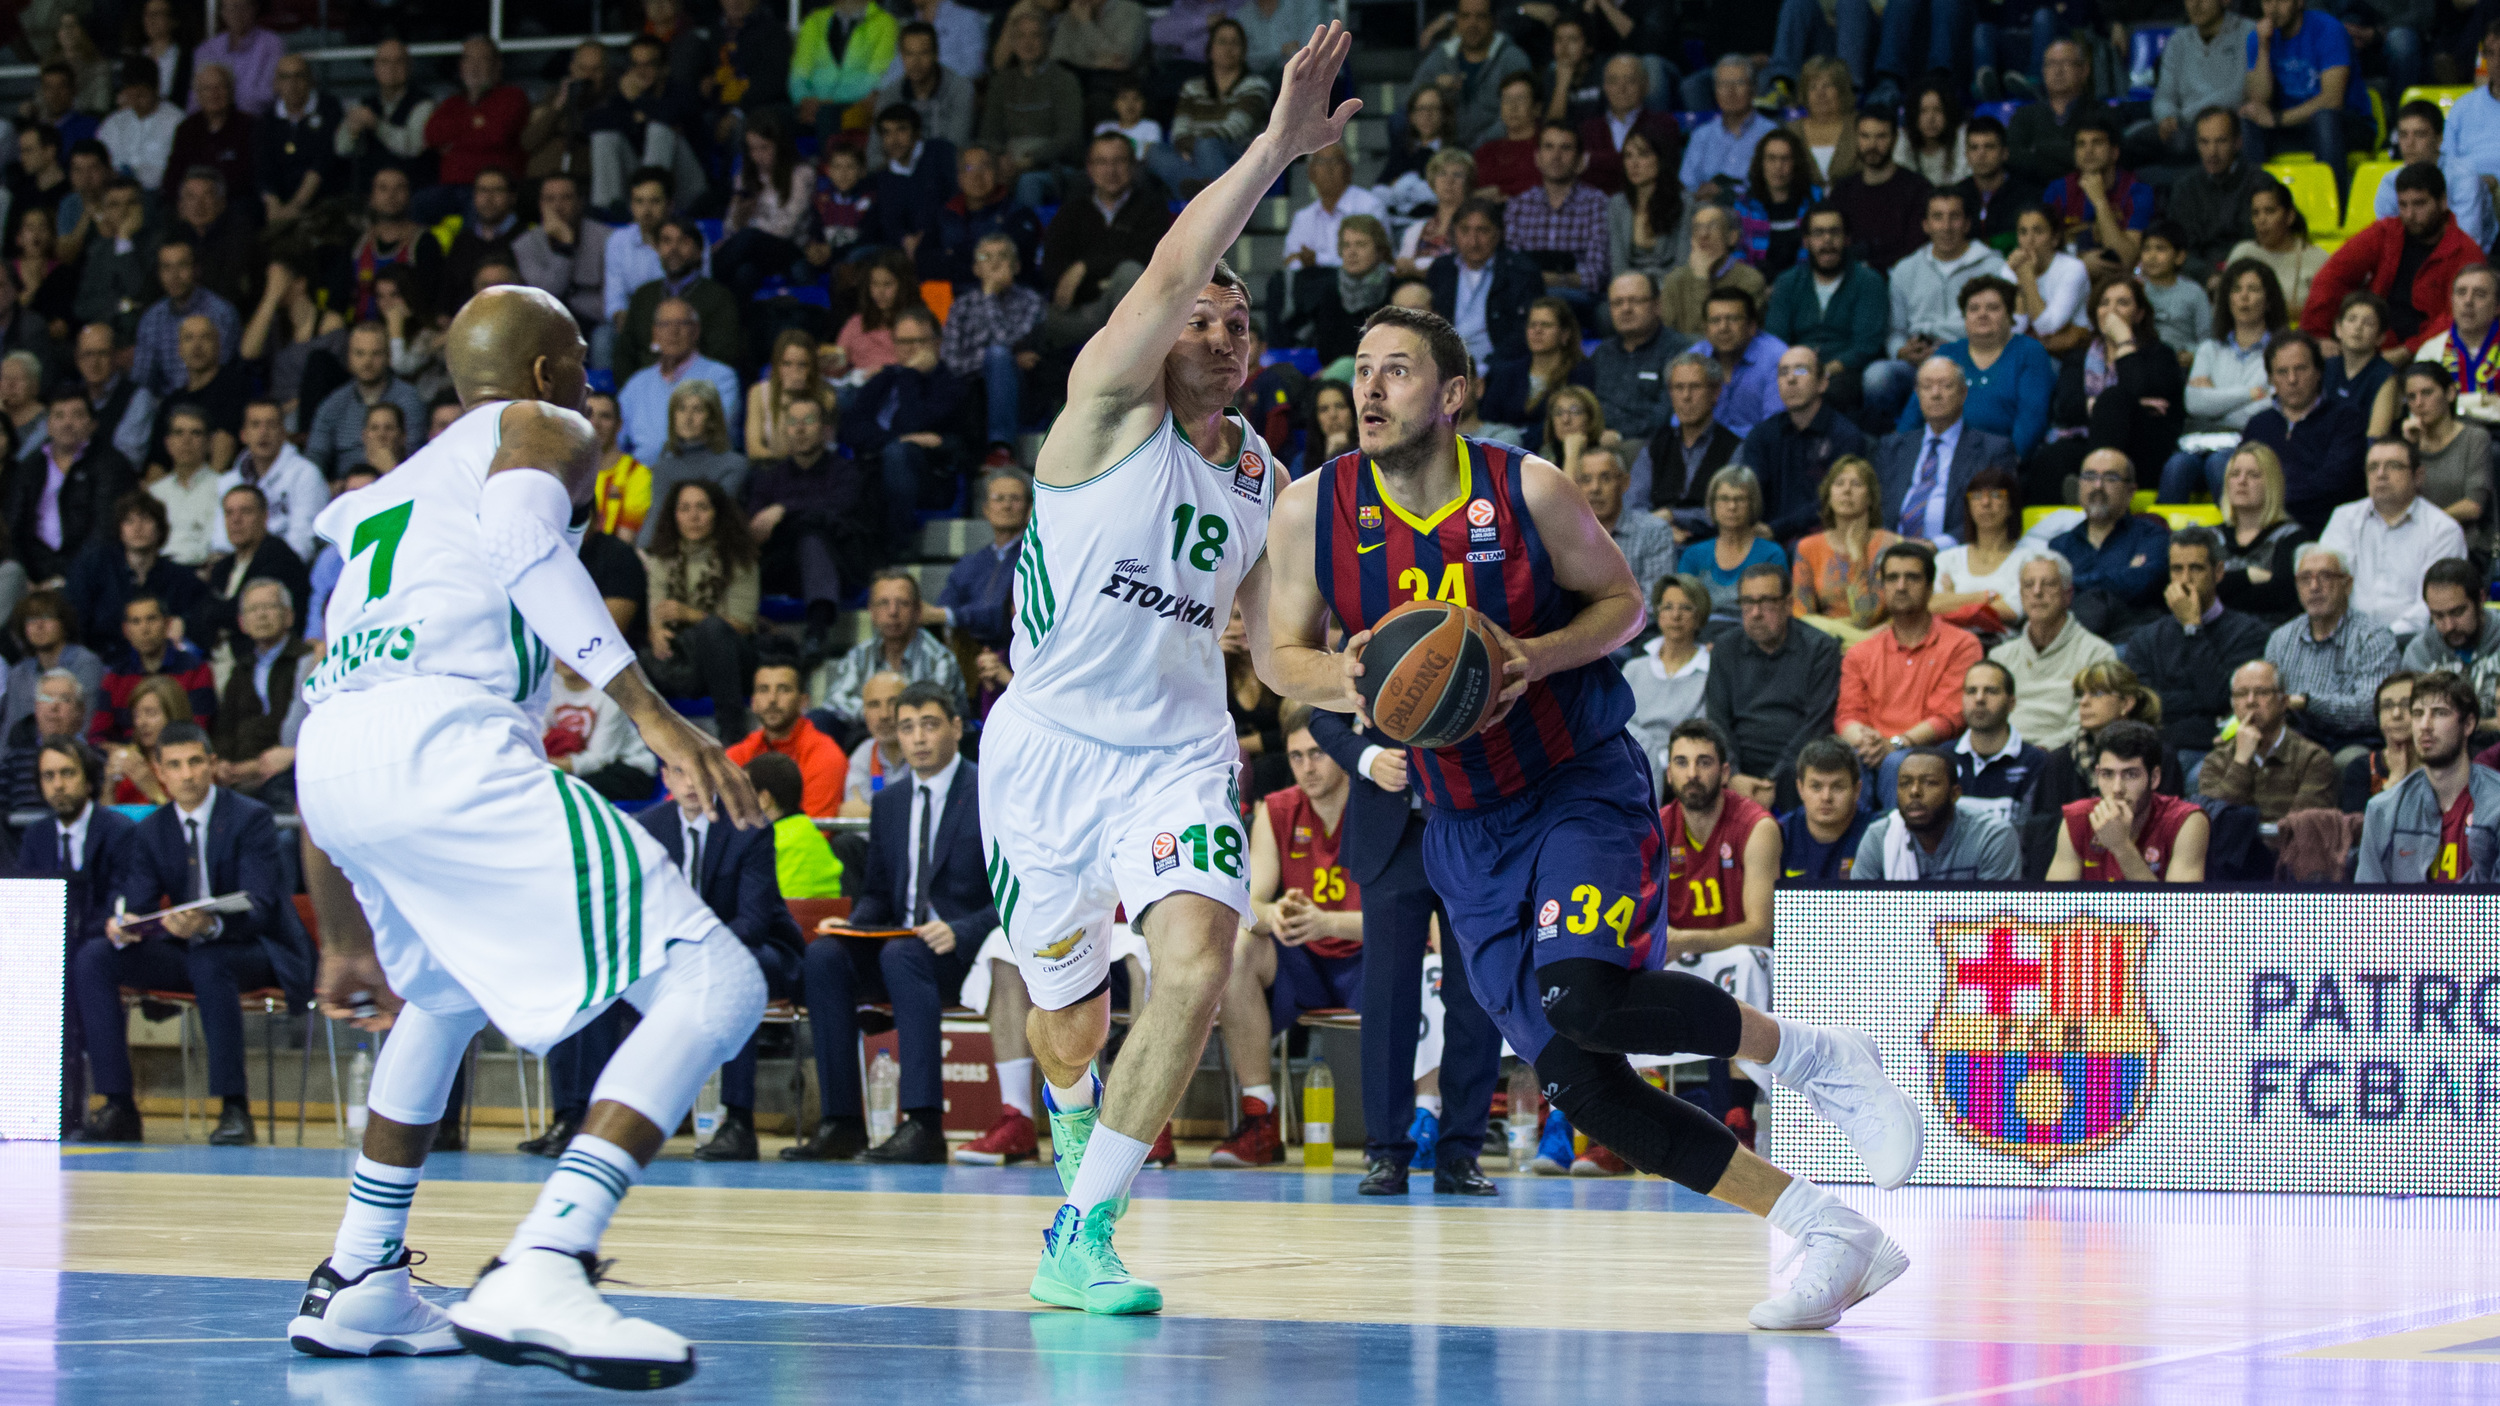 Barcelona will have the home court advantage in the quarterfinals